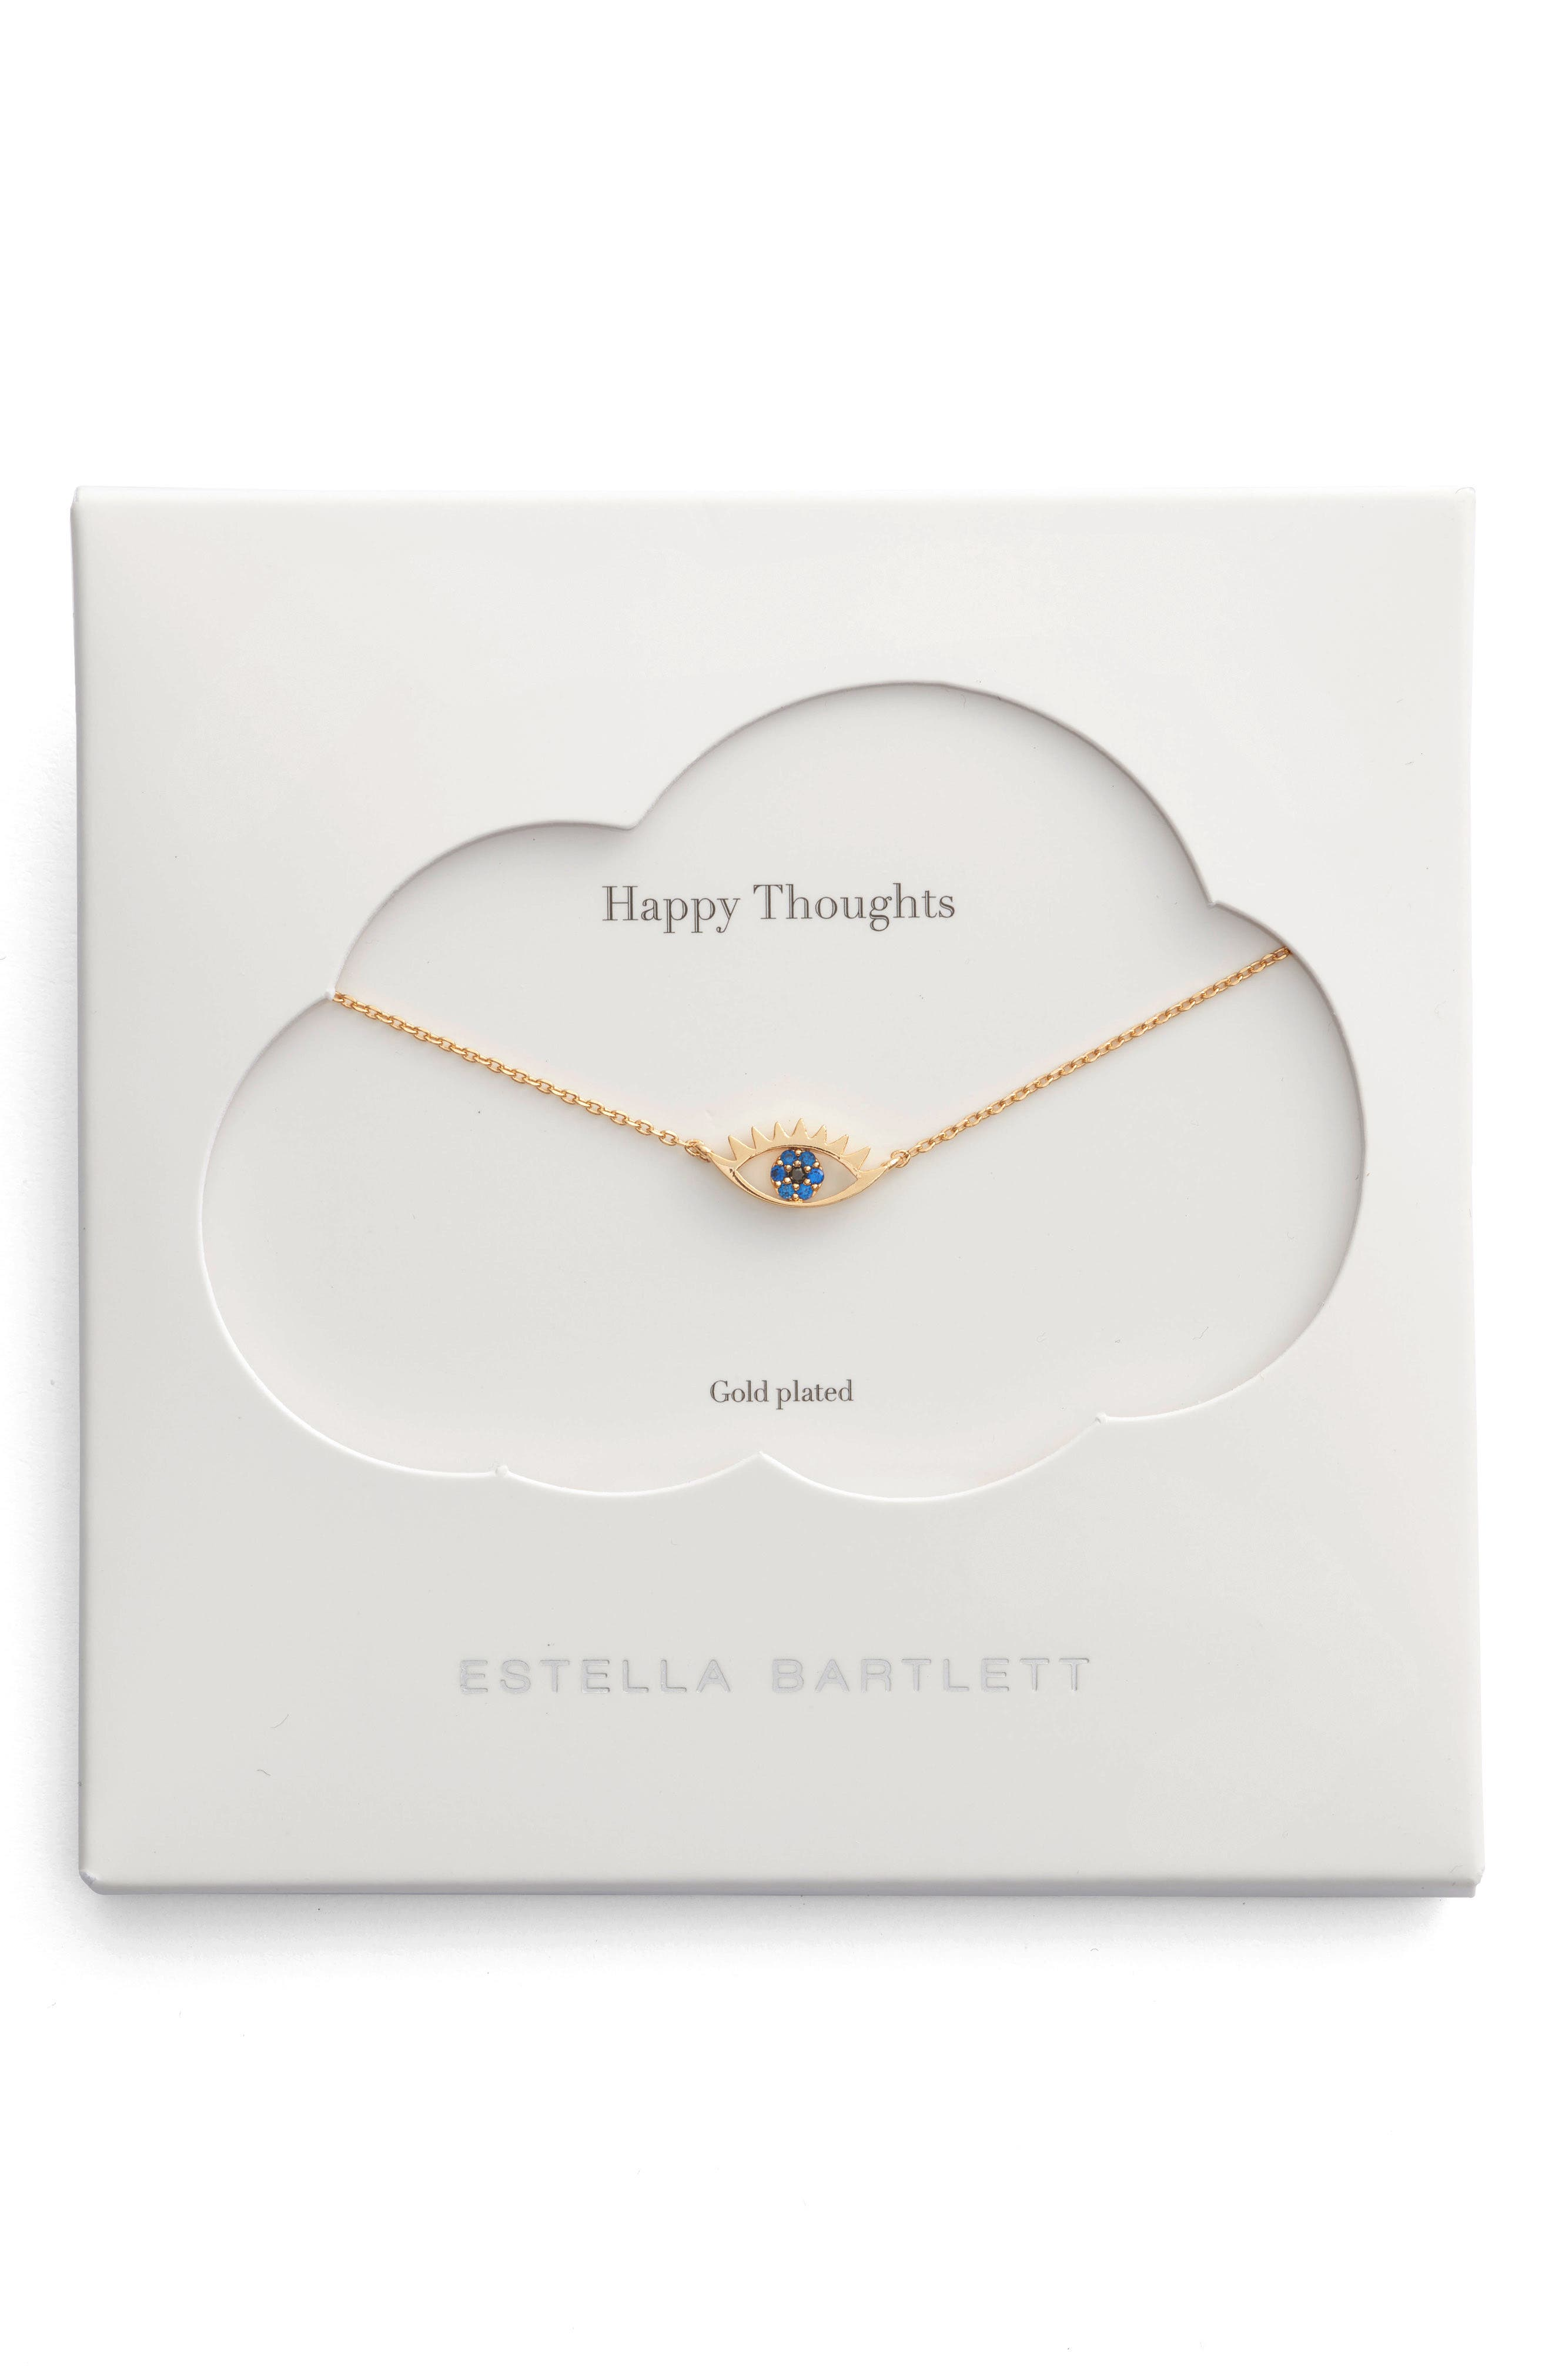 Alternate Image 1 Selected - Estella Bartlett Happy Thoughts Eye Pendant Necklace